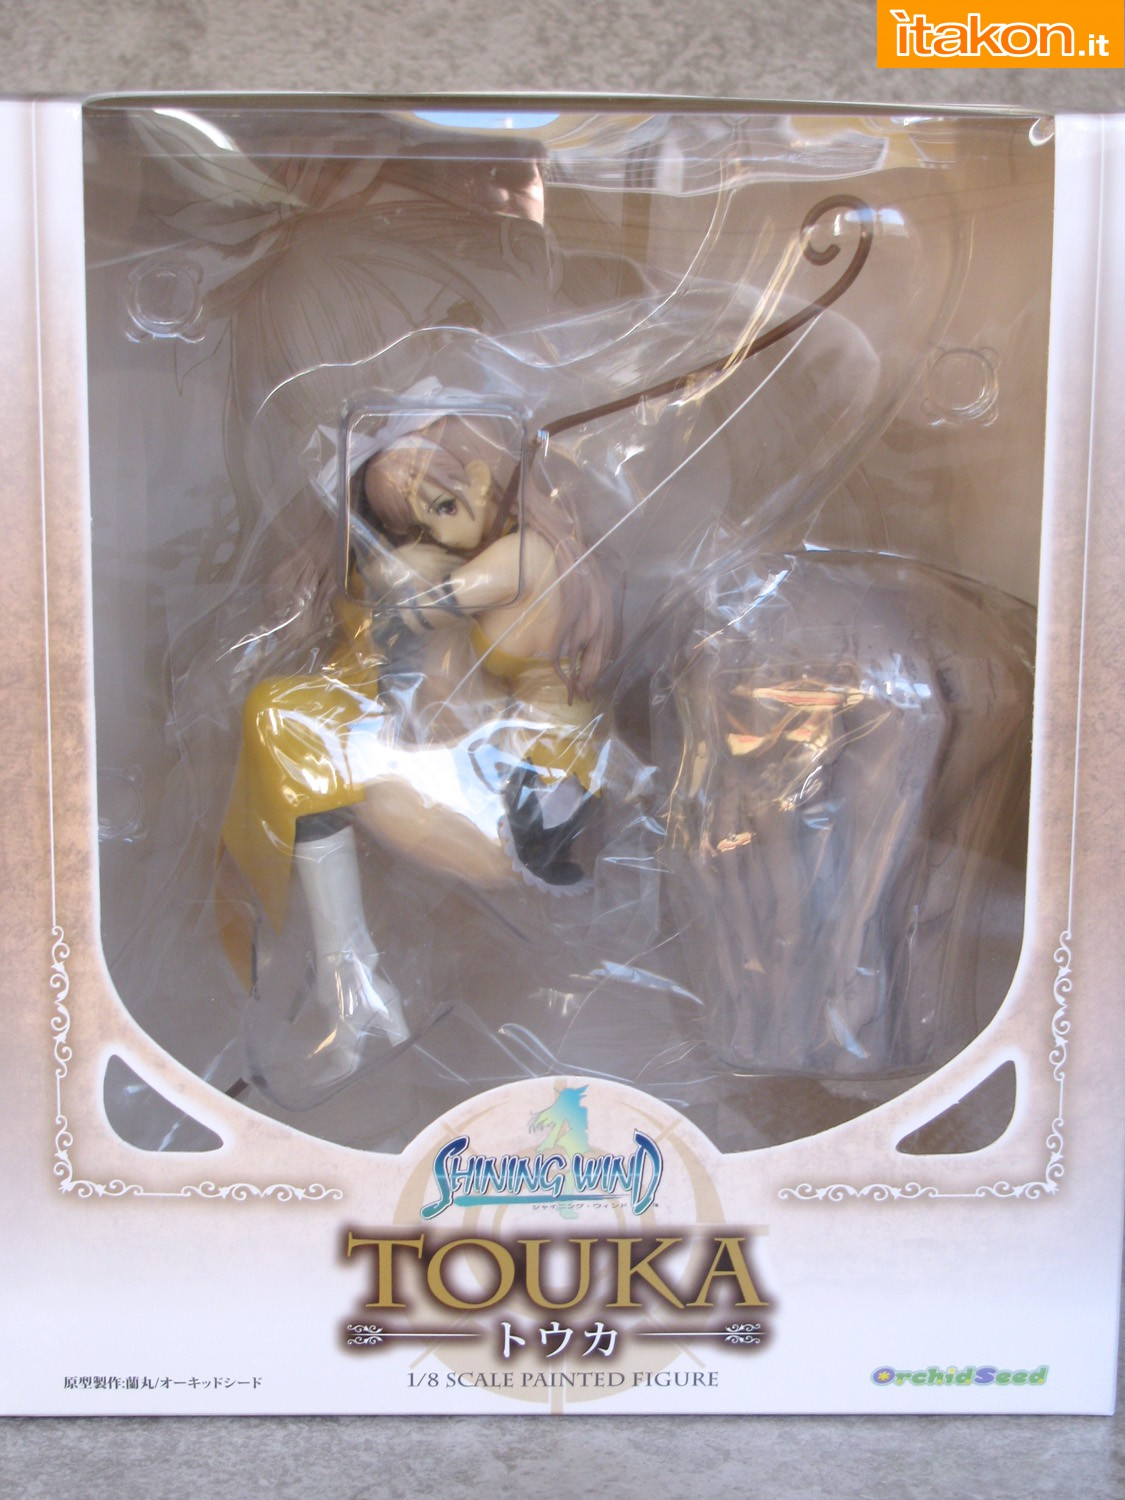 Link a 001 Kureha Shining Wind Orchid Seed Recensione